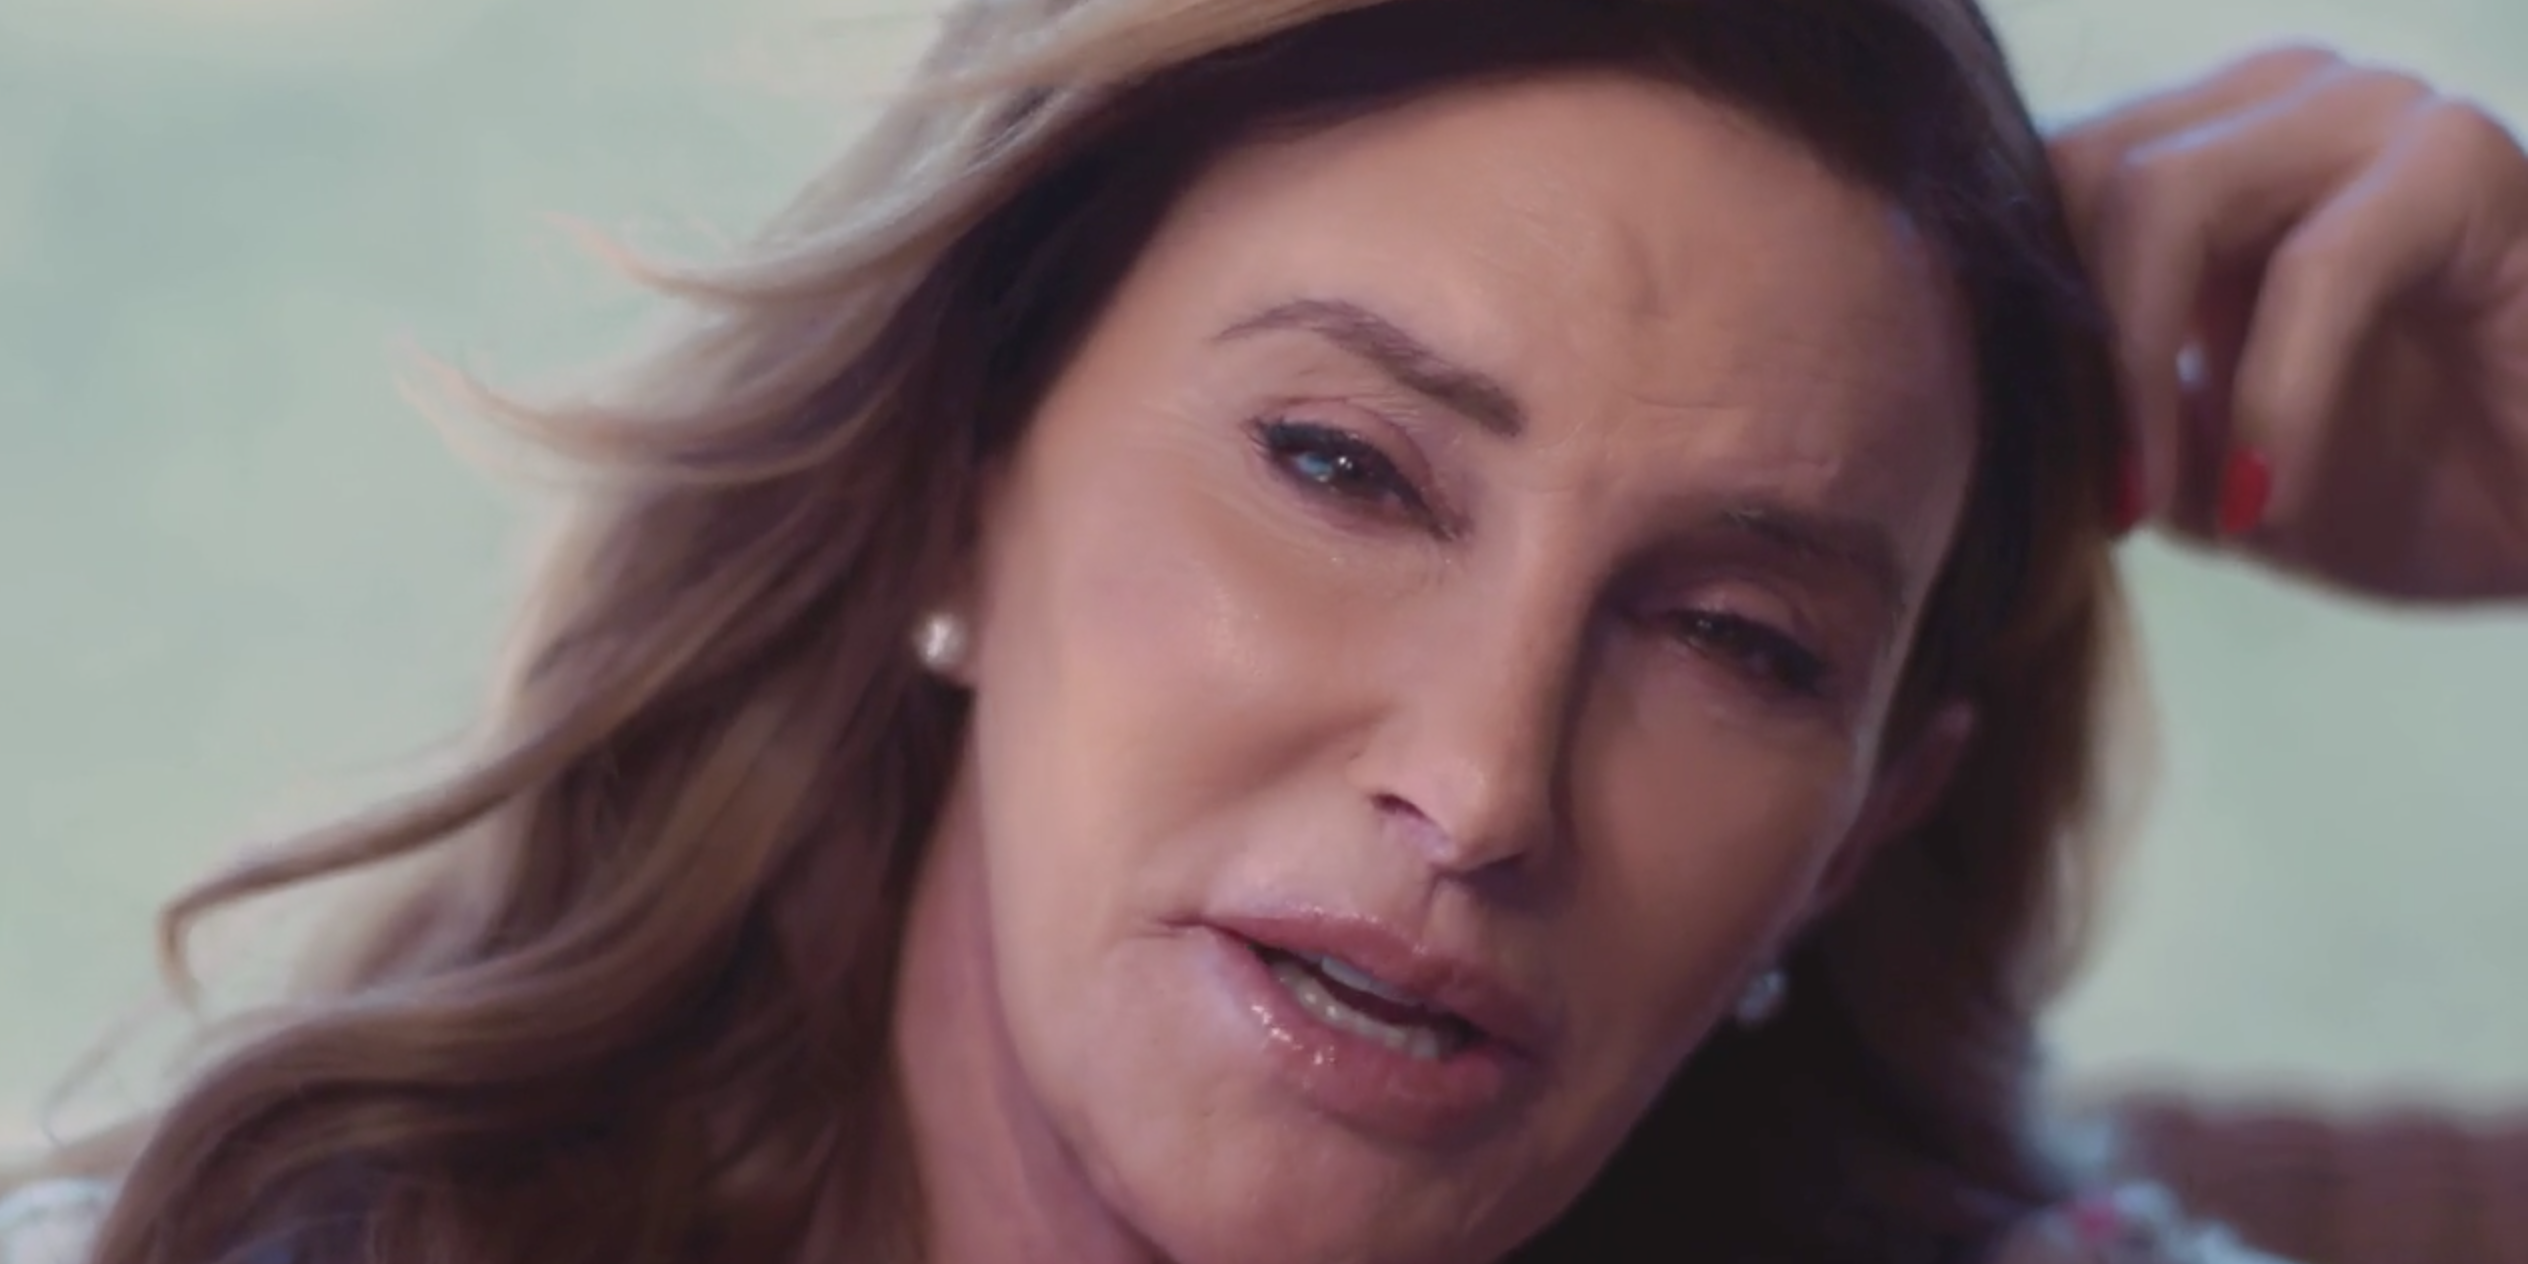 Watch Caitlyn Jenner reflect on her Olympic glory in this poignant  teaser for her new Sports Illustrated film